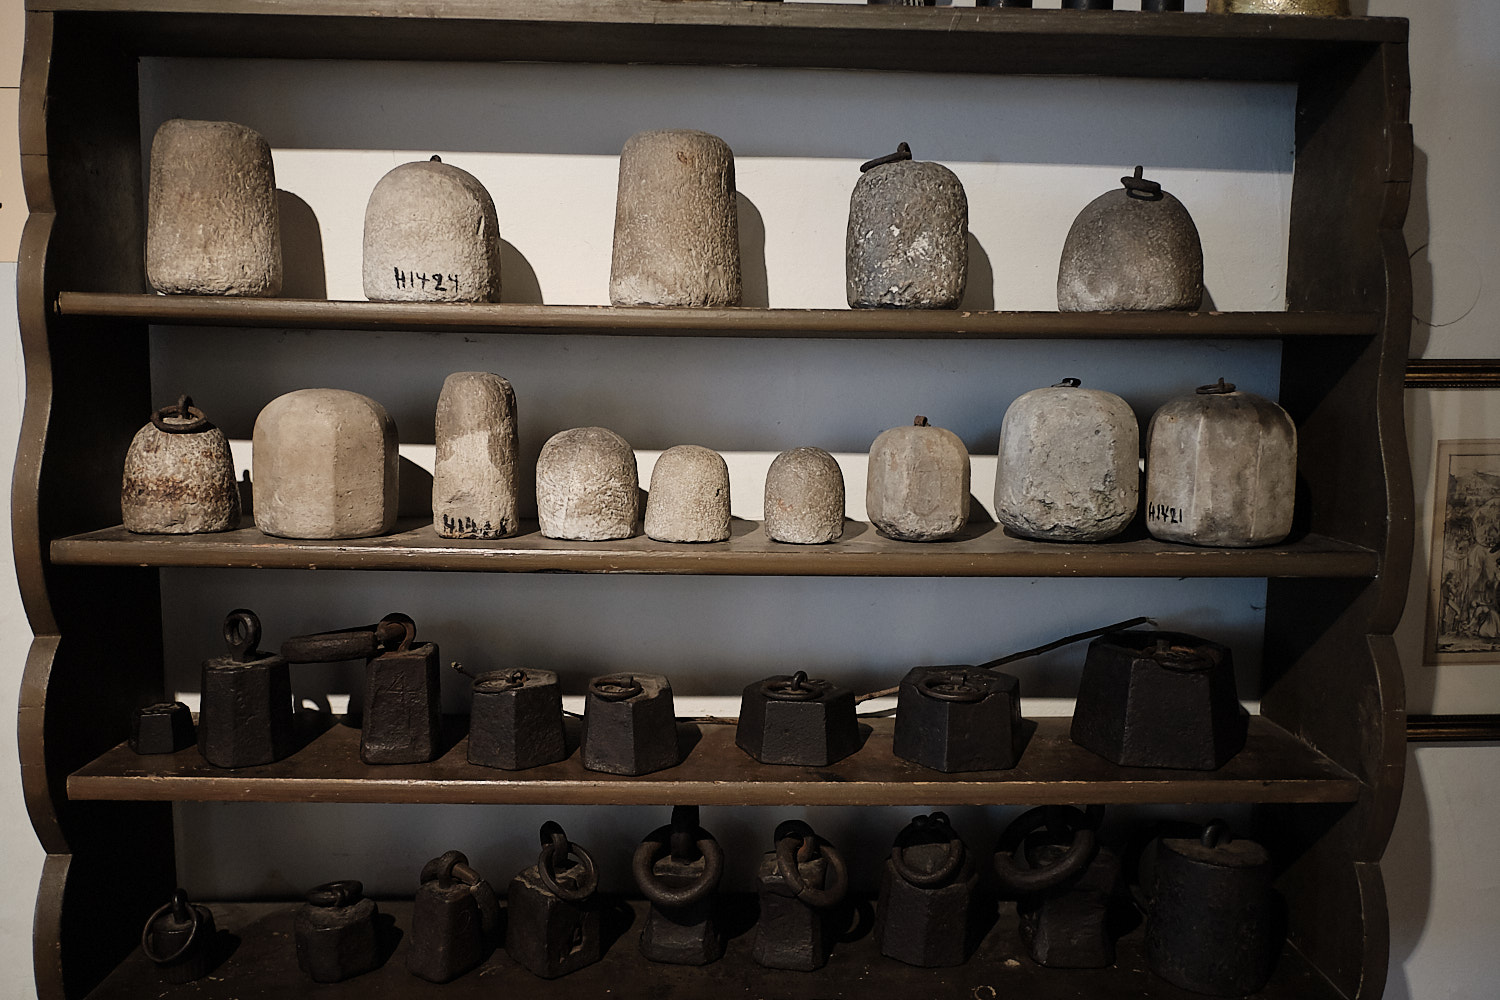 The herder museum, Hersbruck, Franconia, Germany